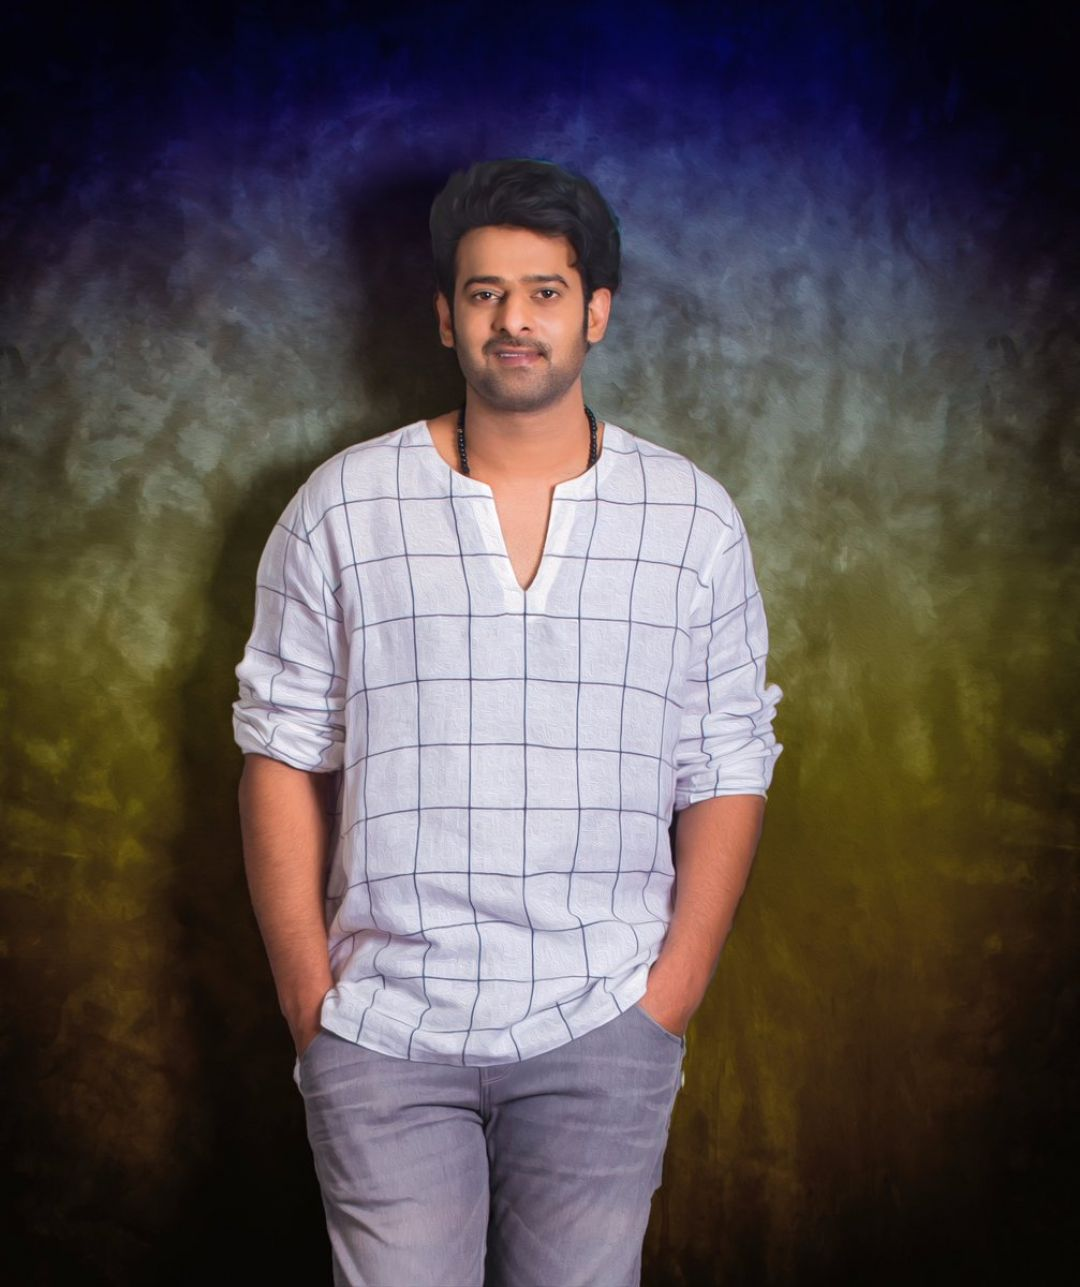 270 Prabhas Hd Wallpapers Desktop Background Android Iphone 1080p 4k 1080x1287 2020